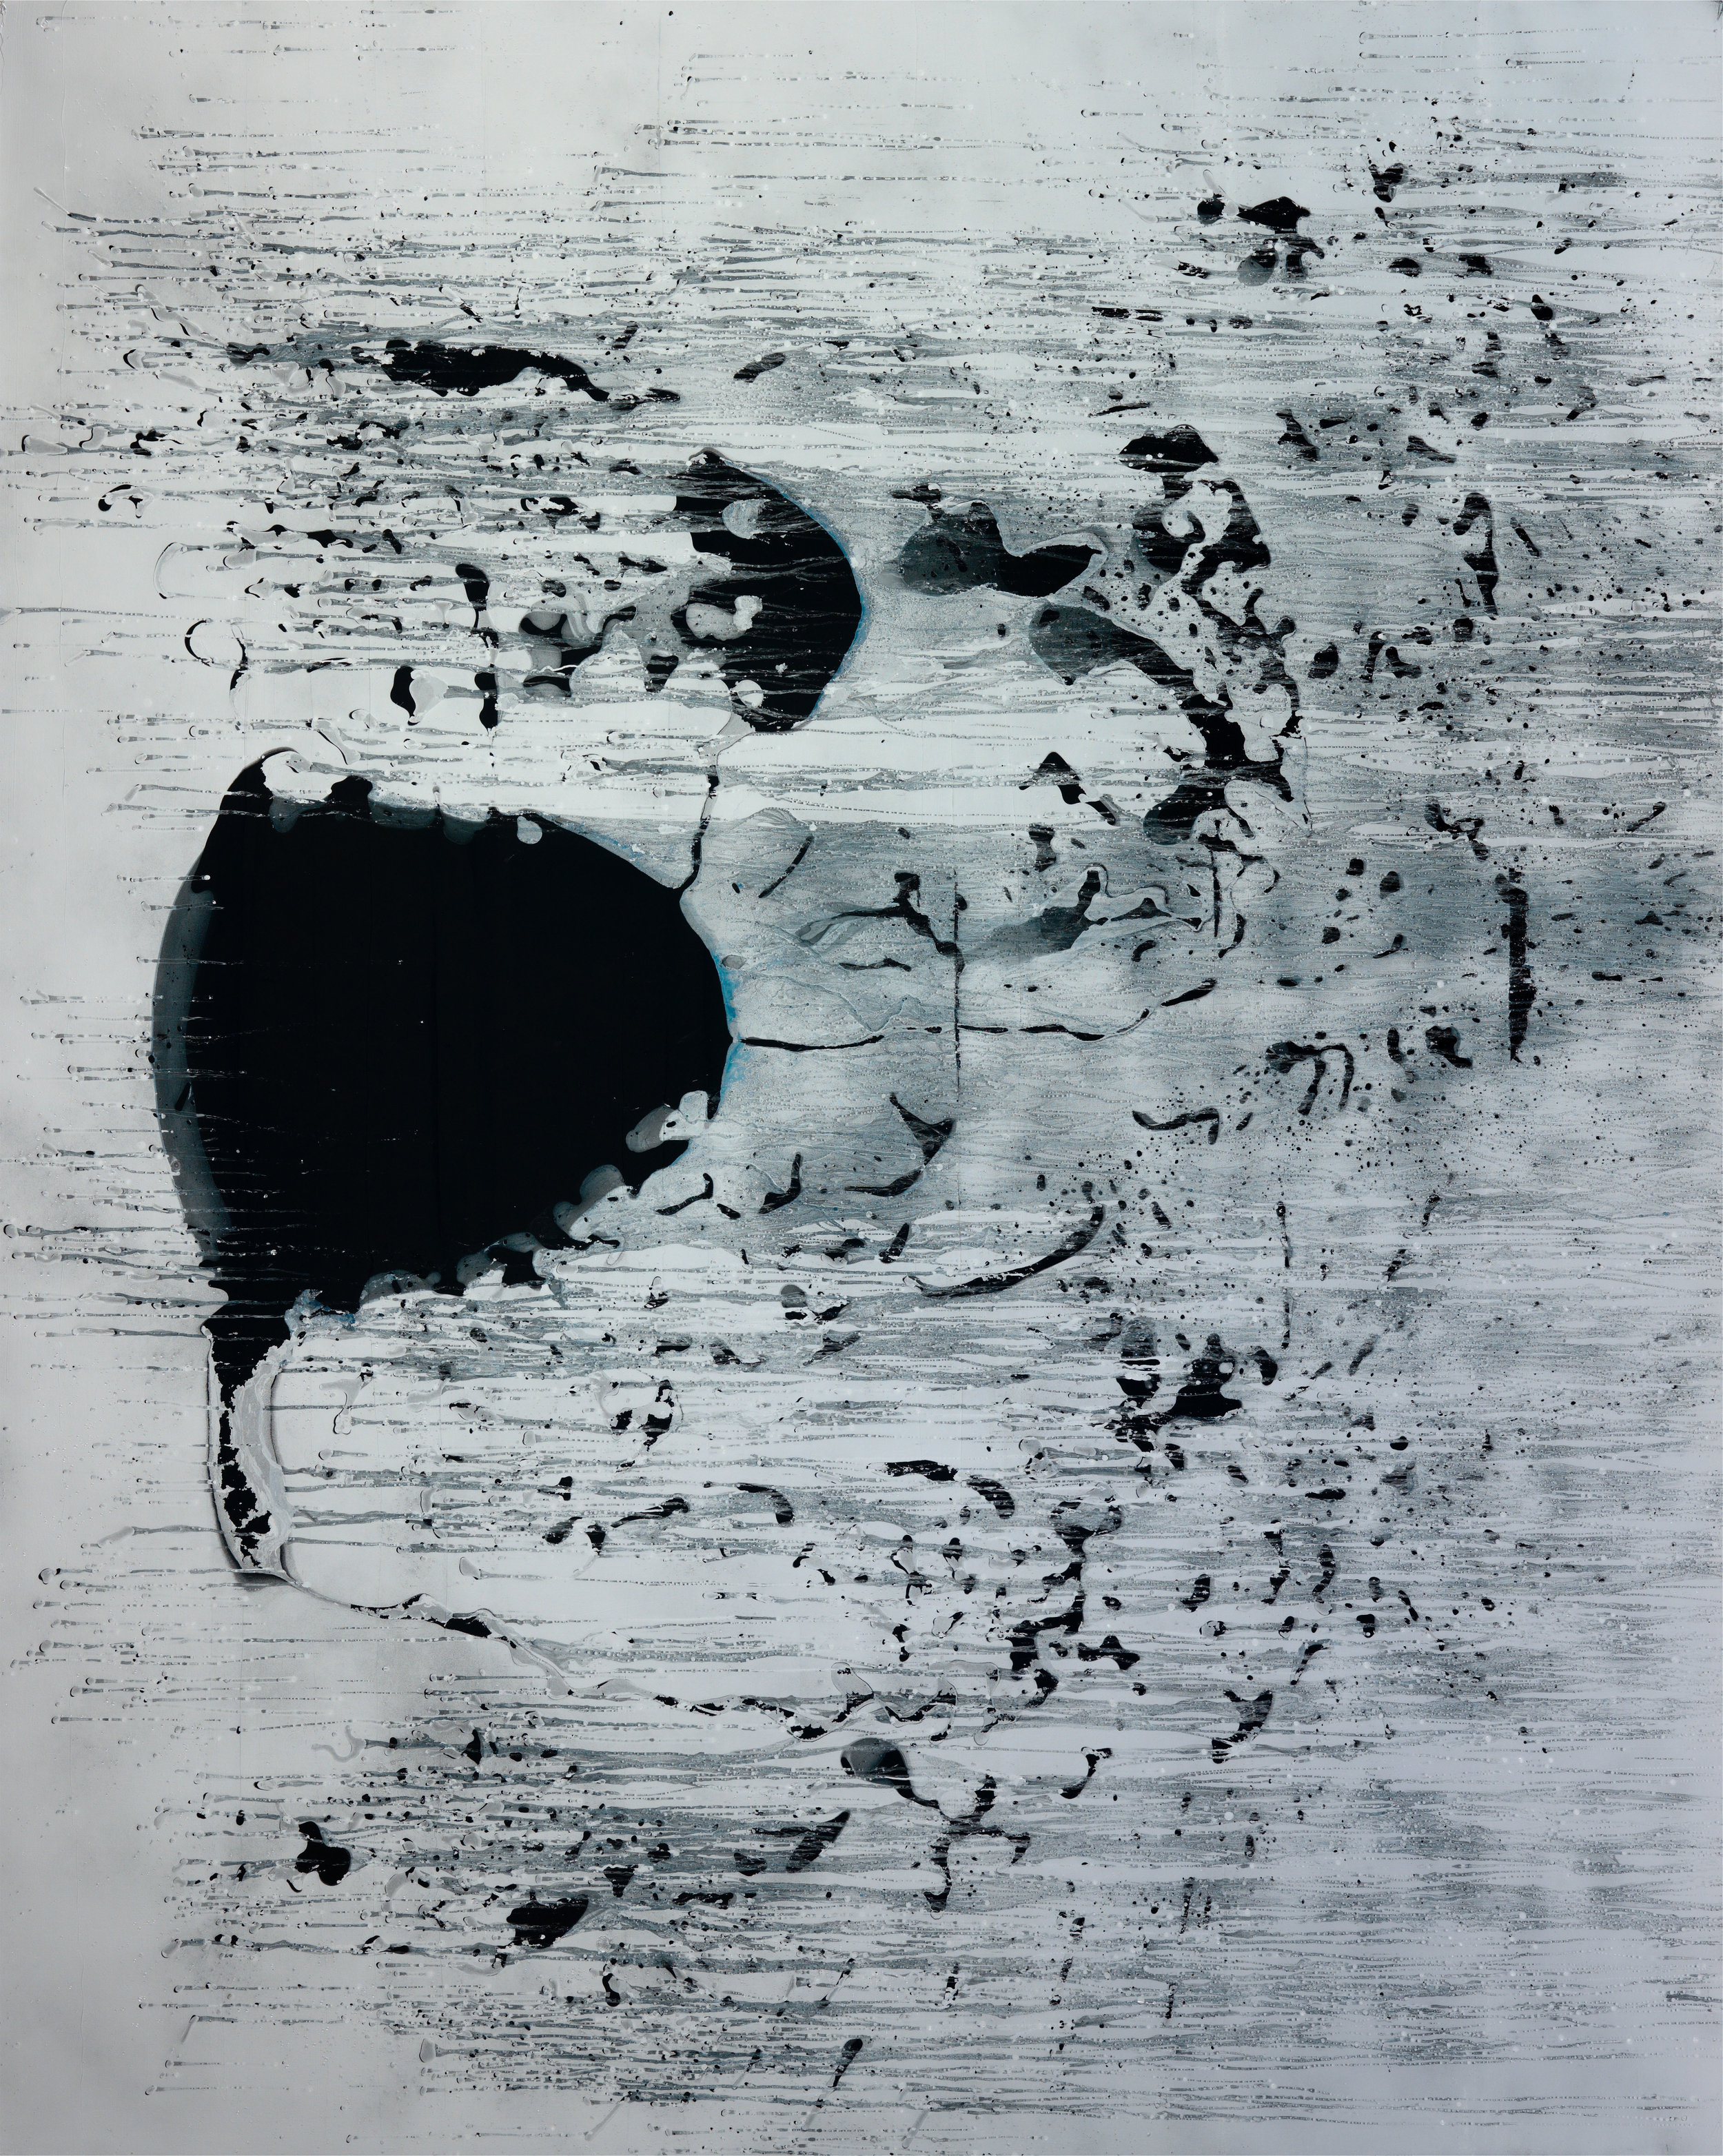 Untitled, 2009 oil and acrylic on canvas 250 x 200 cm - 98 3/8 x 78 3/4 inches